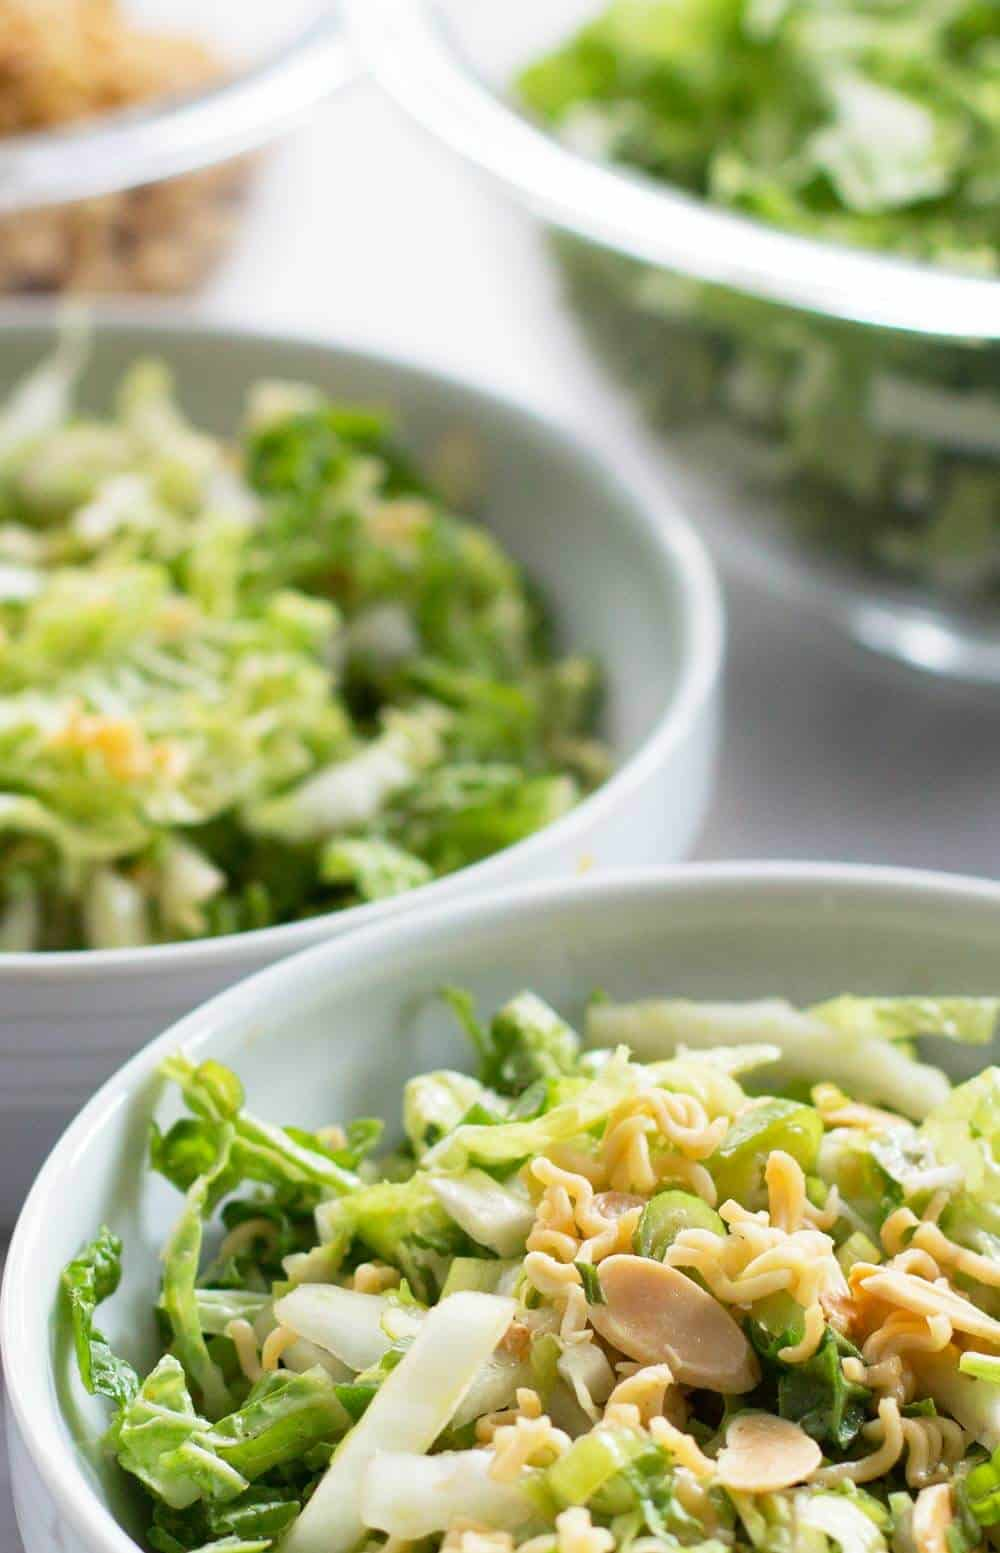 crunchy Napa cabbage salad with a bowl of cabbage behind